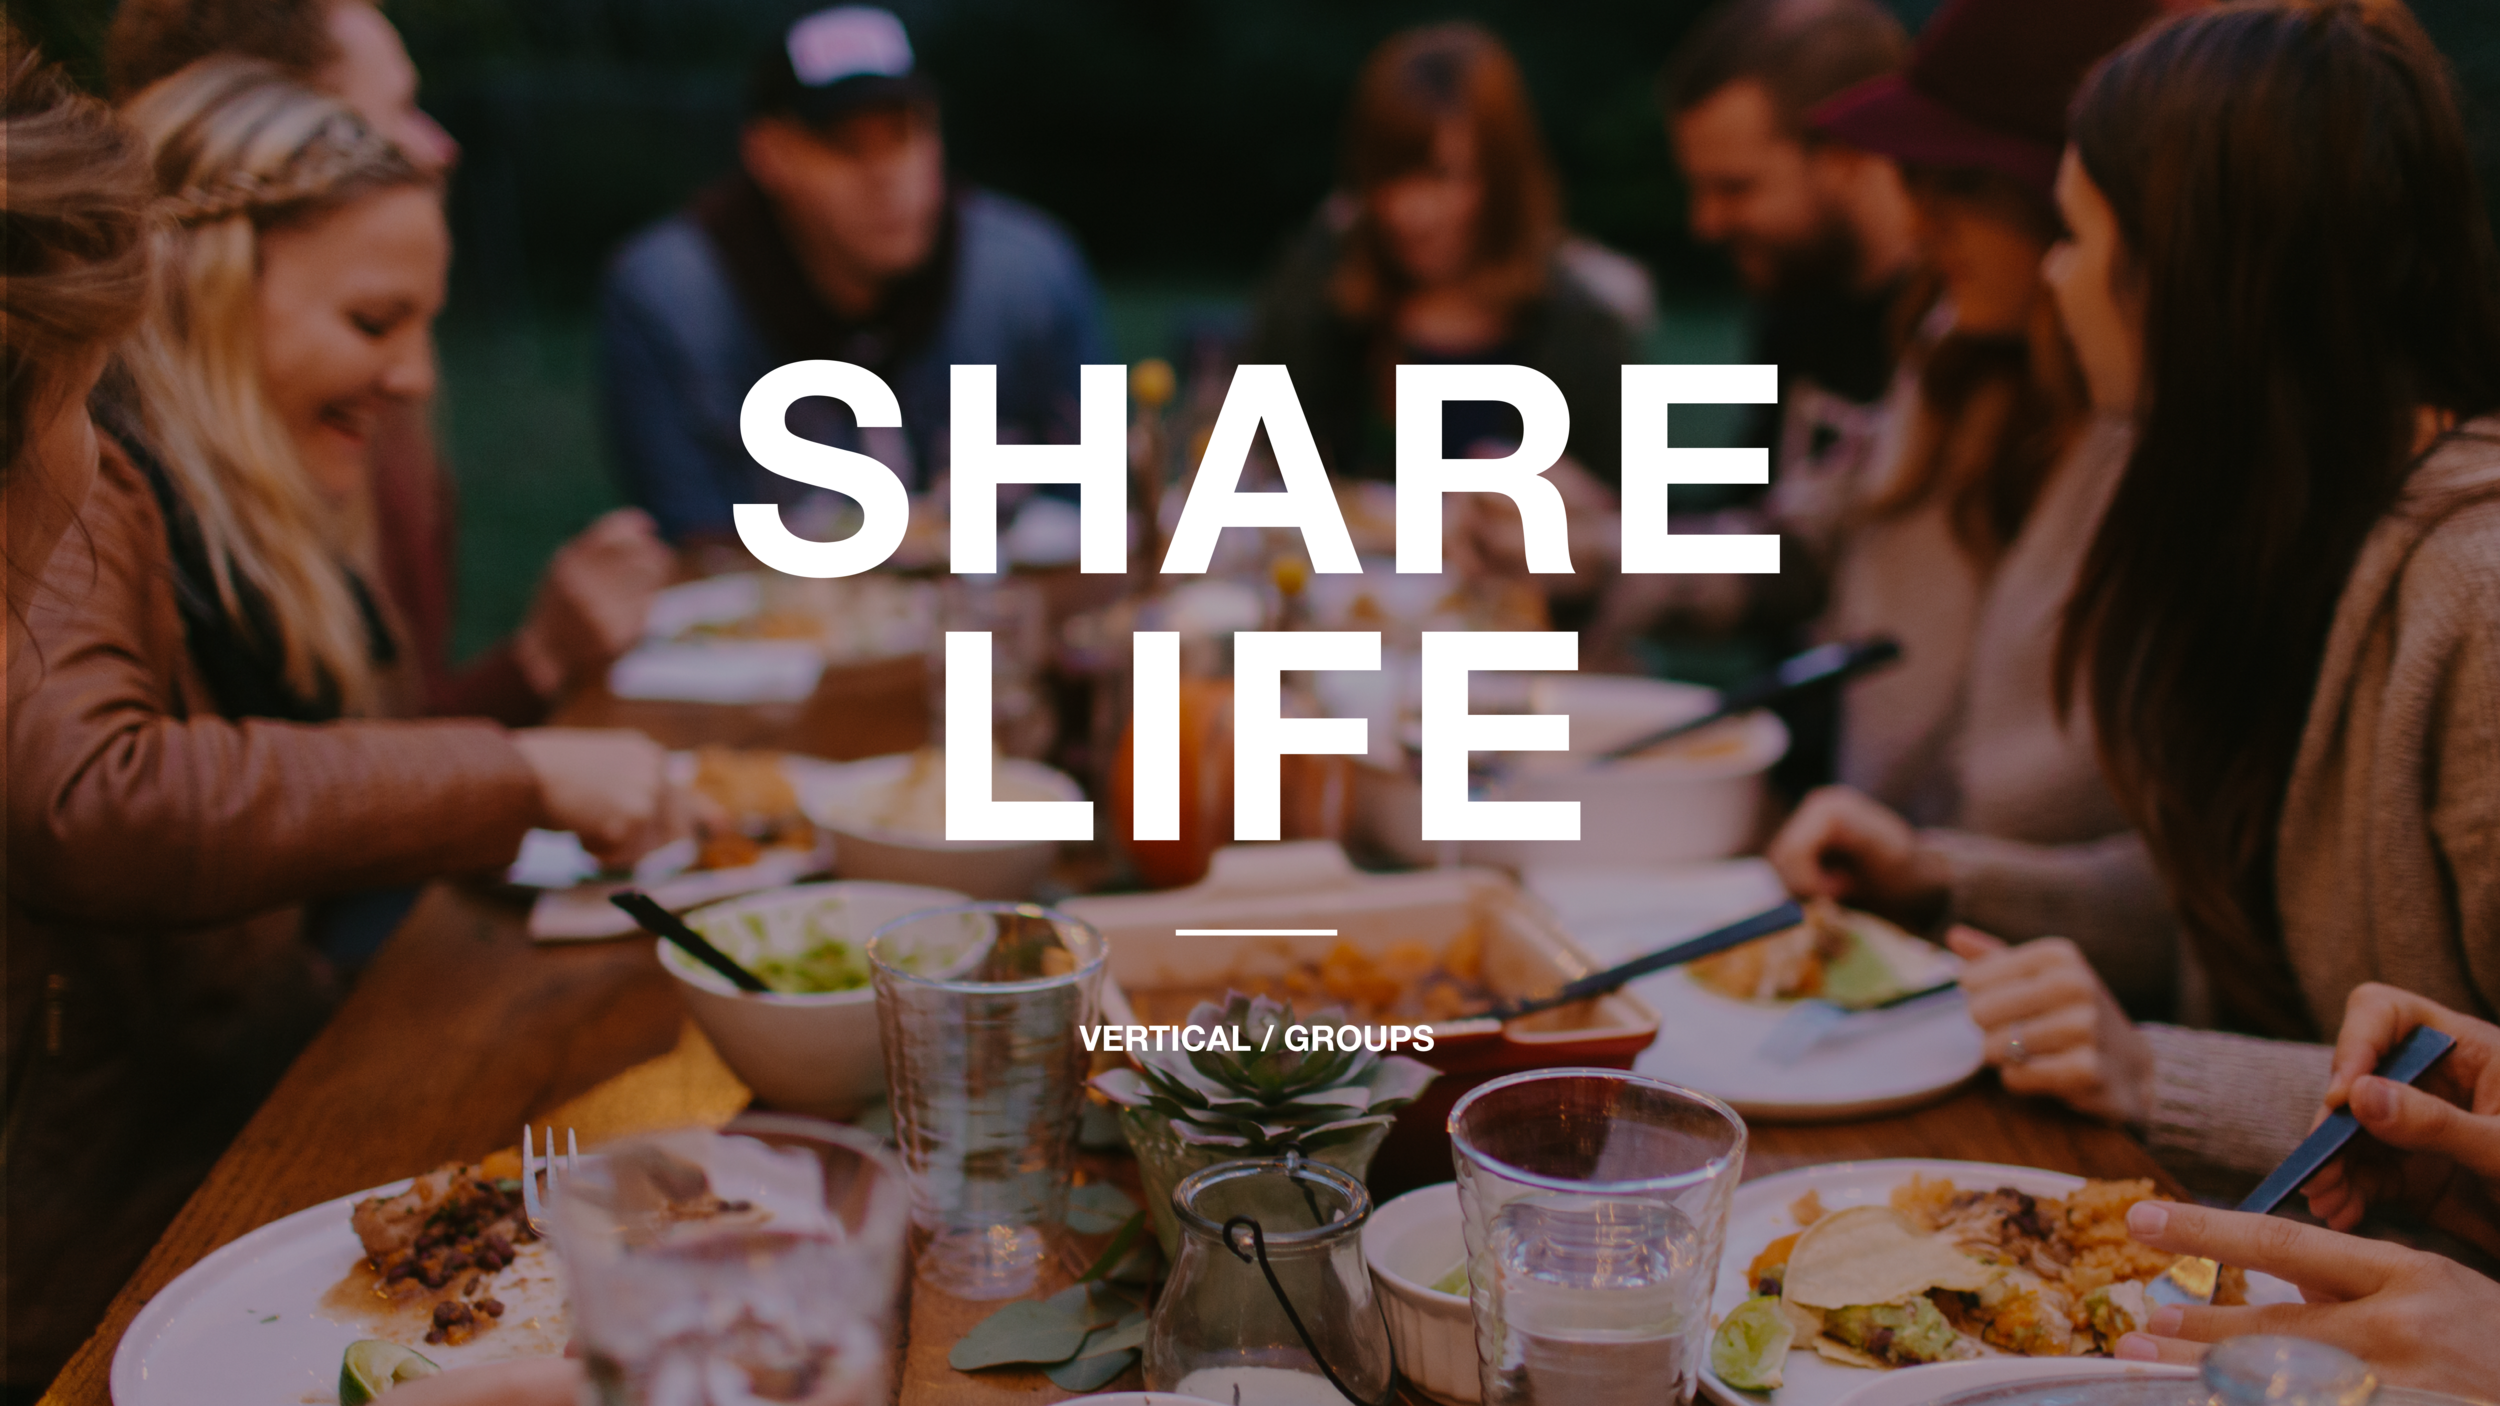 Share Life Graphic 16x9 Fall 2017.png